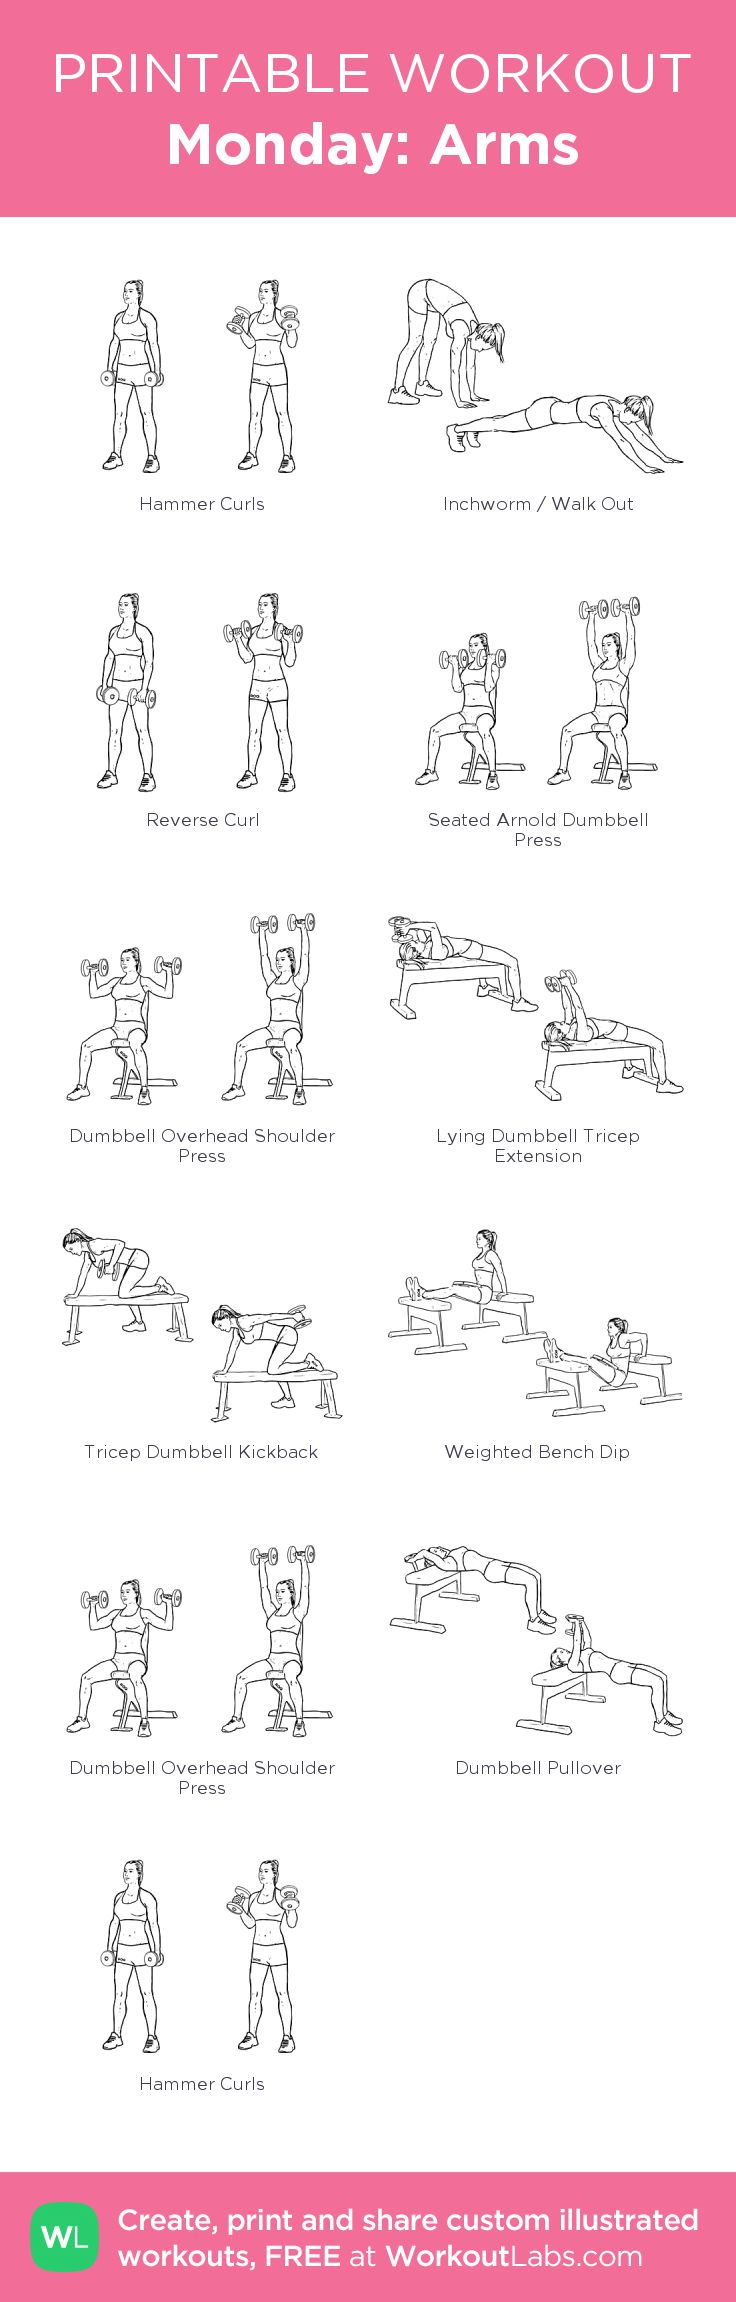 Monday: Arms:my visual workout created at WorkoutLabs.com • Click through to customize and download as a FREE PDF! #customworkout